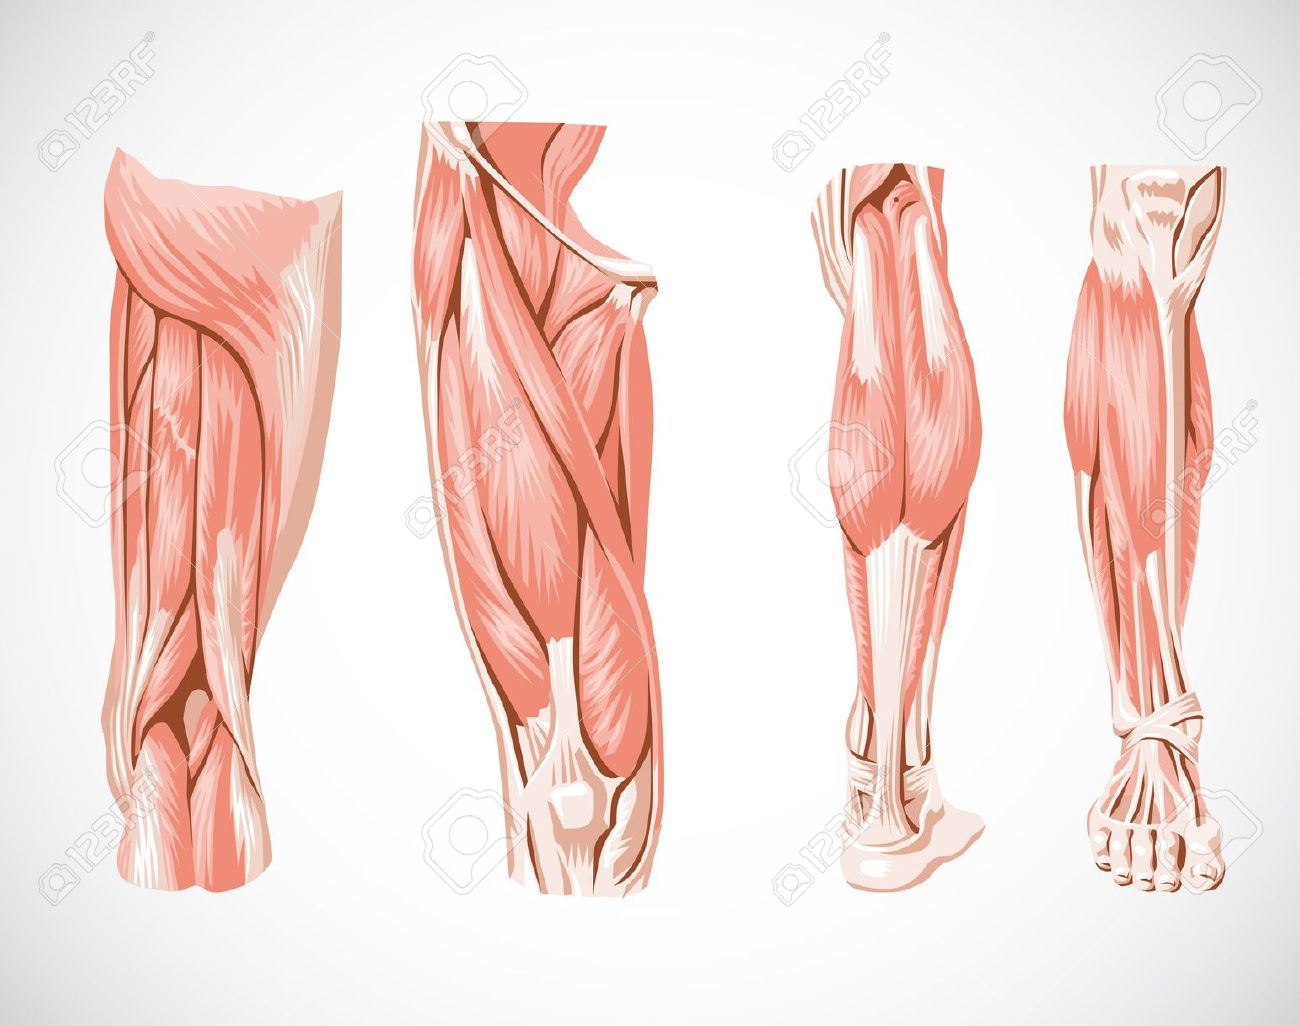 regeneration-musculaire-featured-image - Work for human longevity